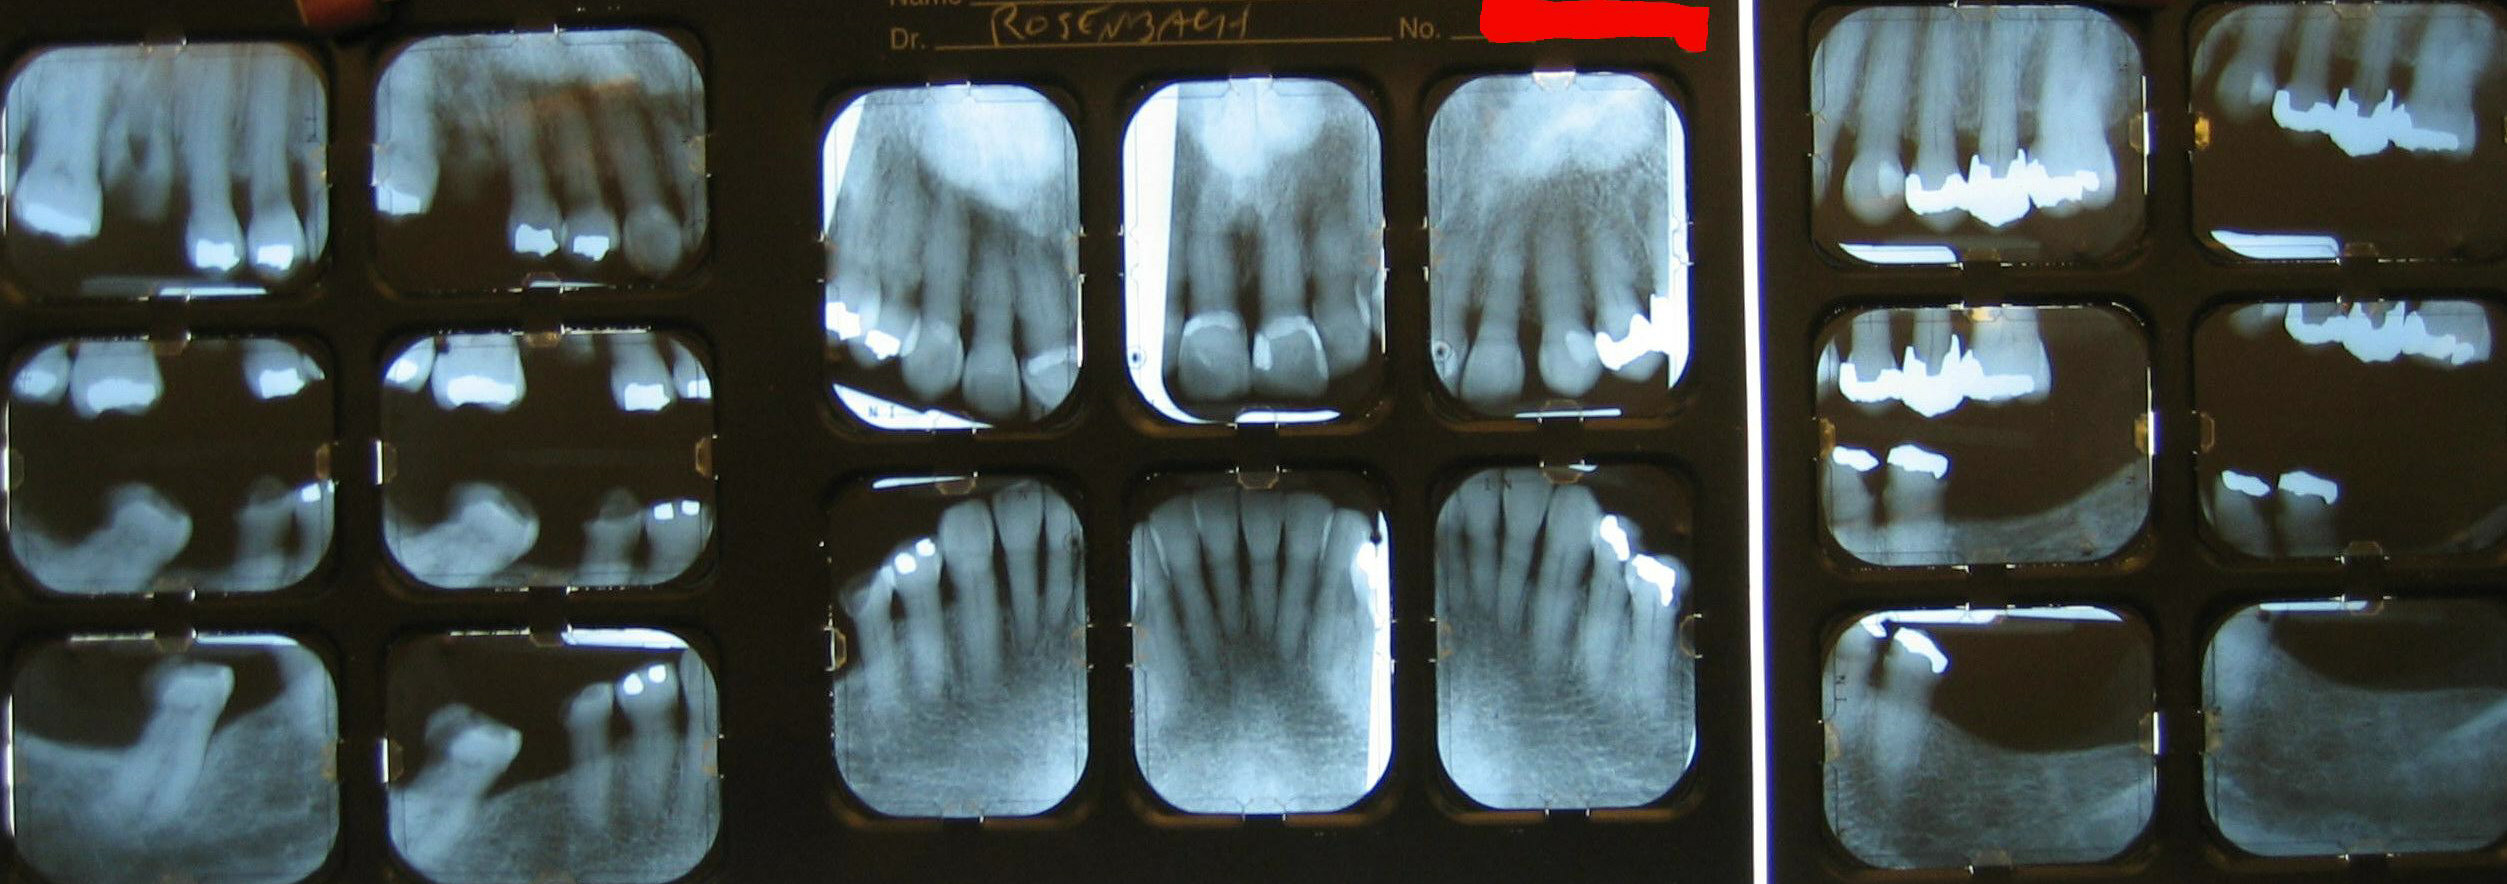 Fms Caries Periapical Ray Of Teeth